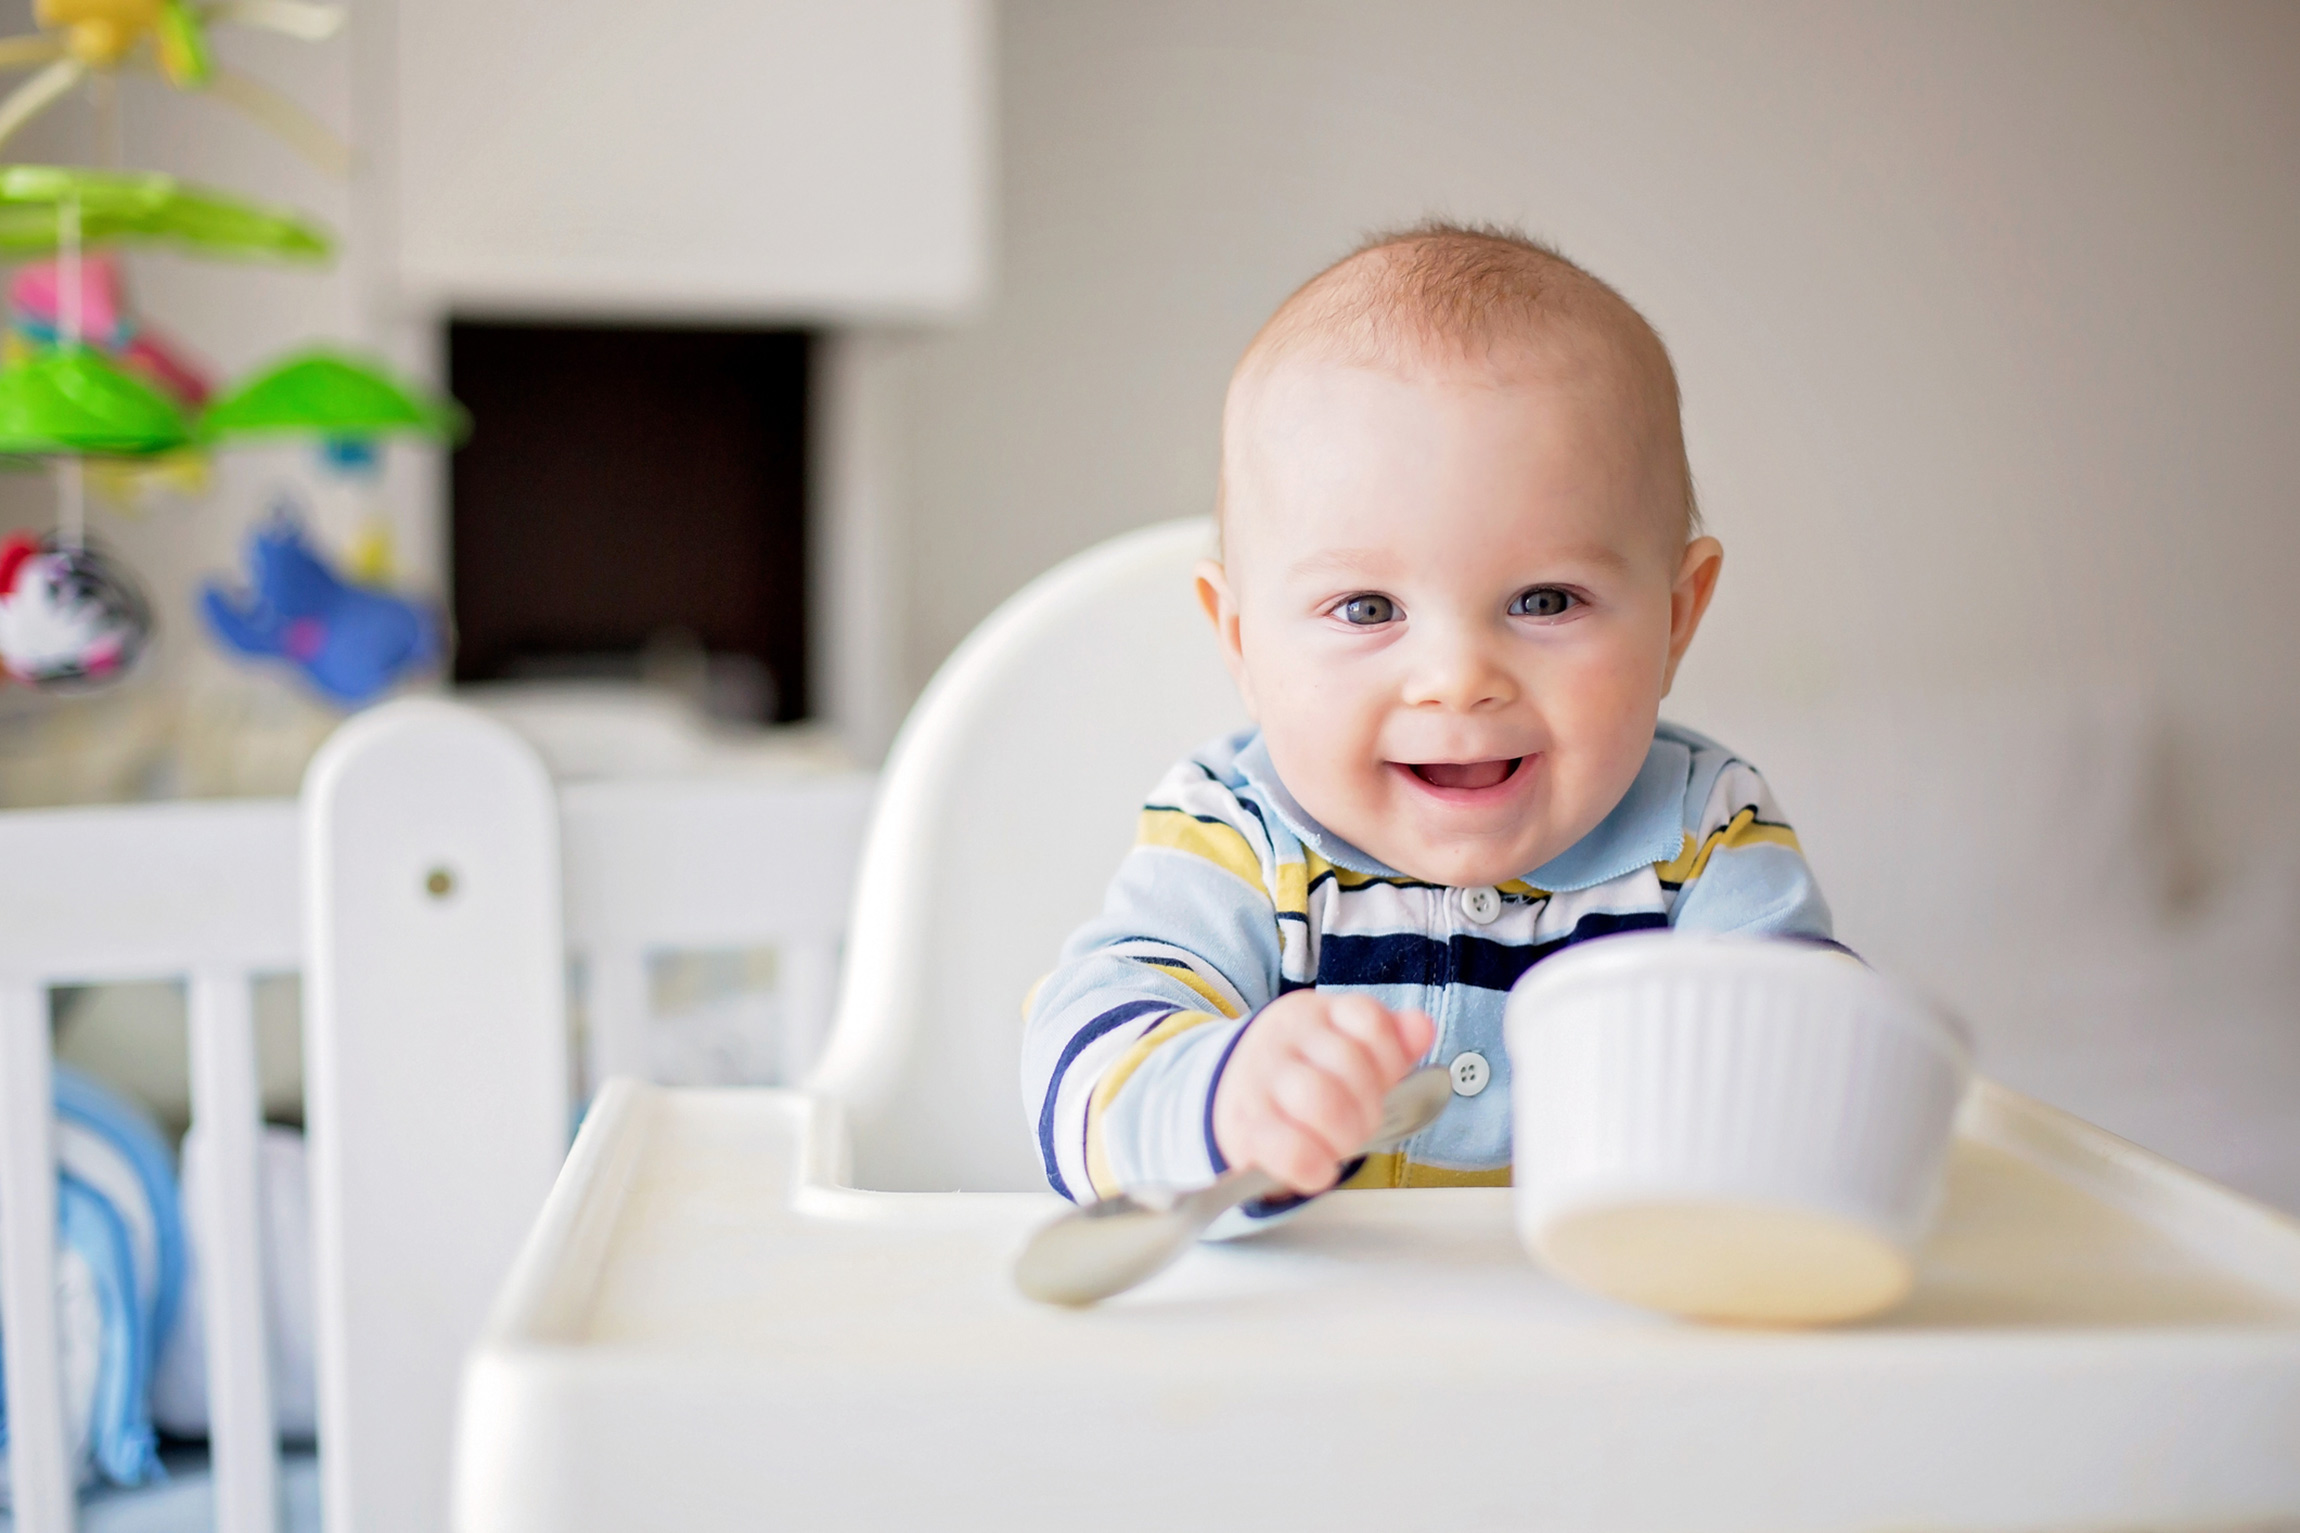 Baby with bowl eating baby food